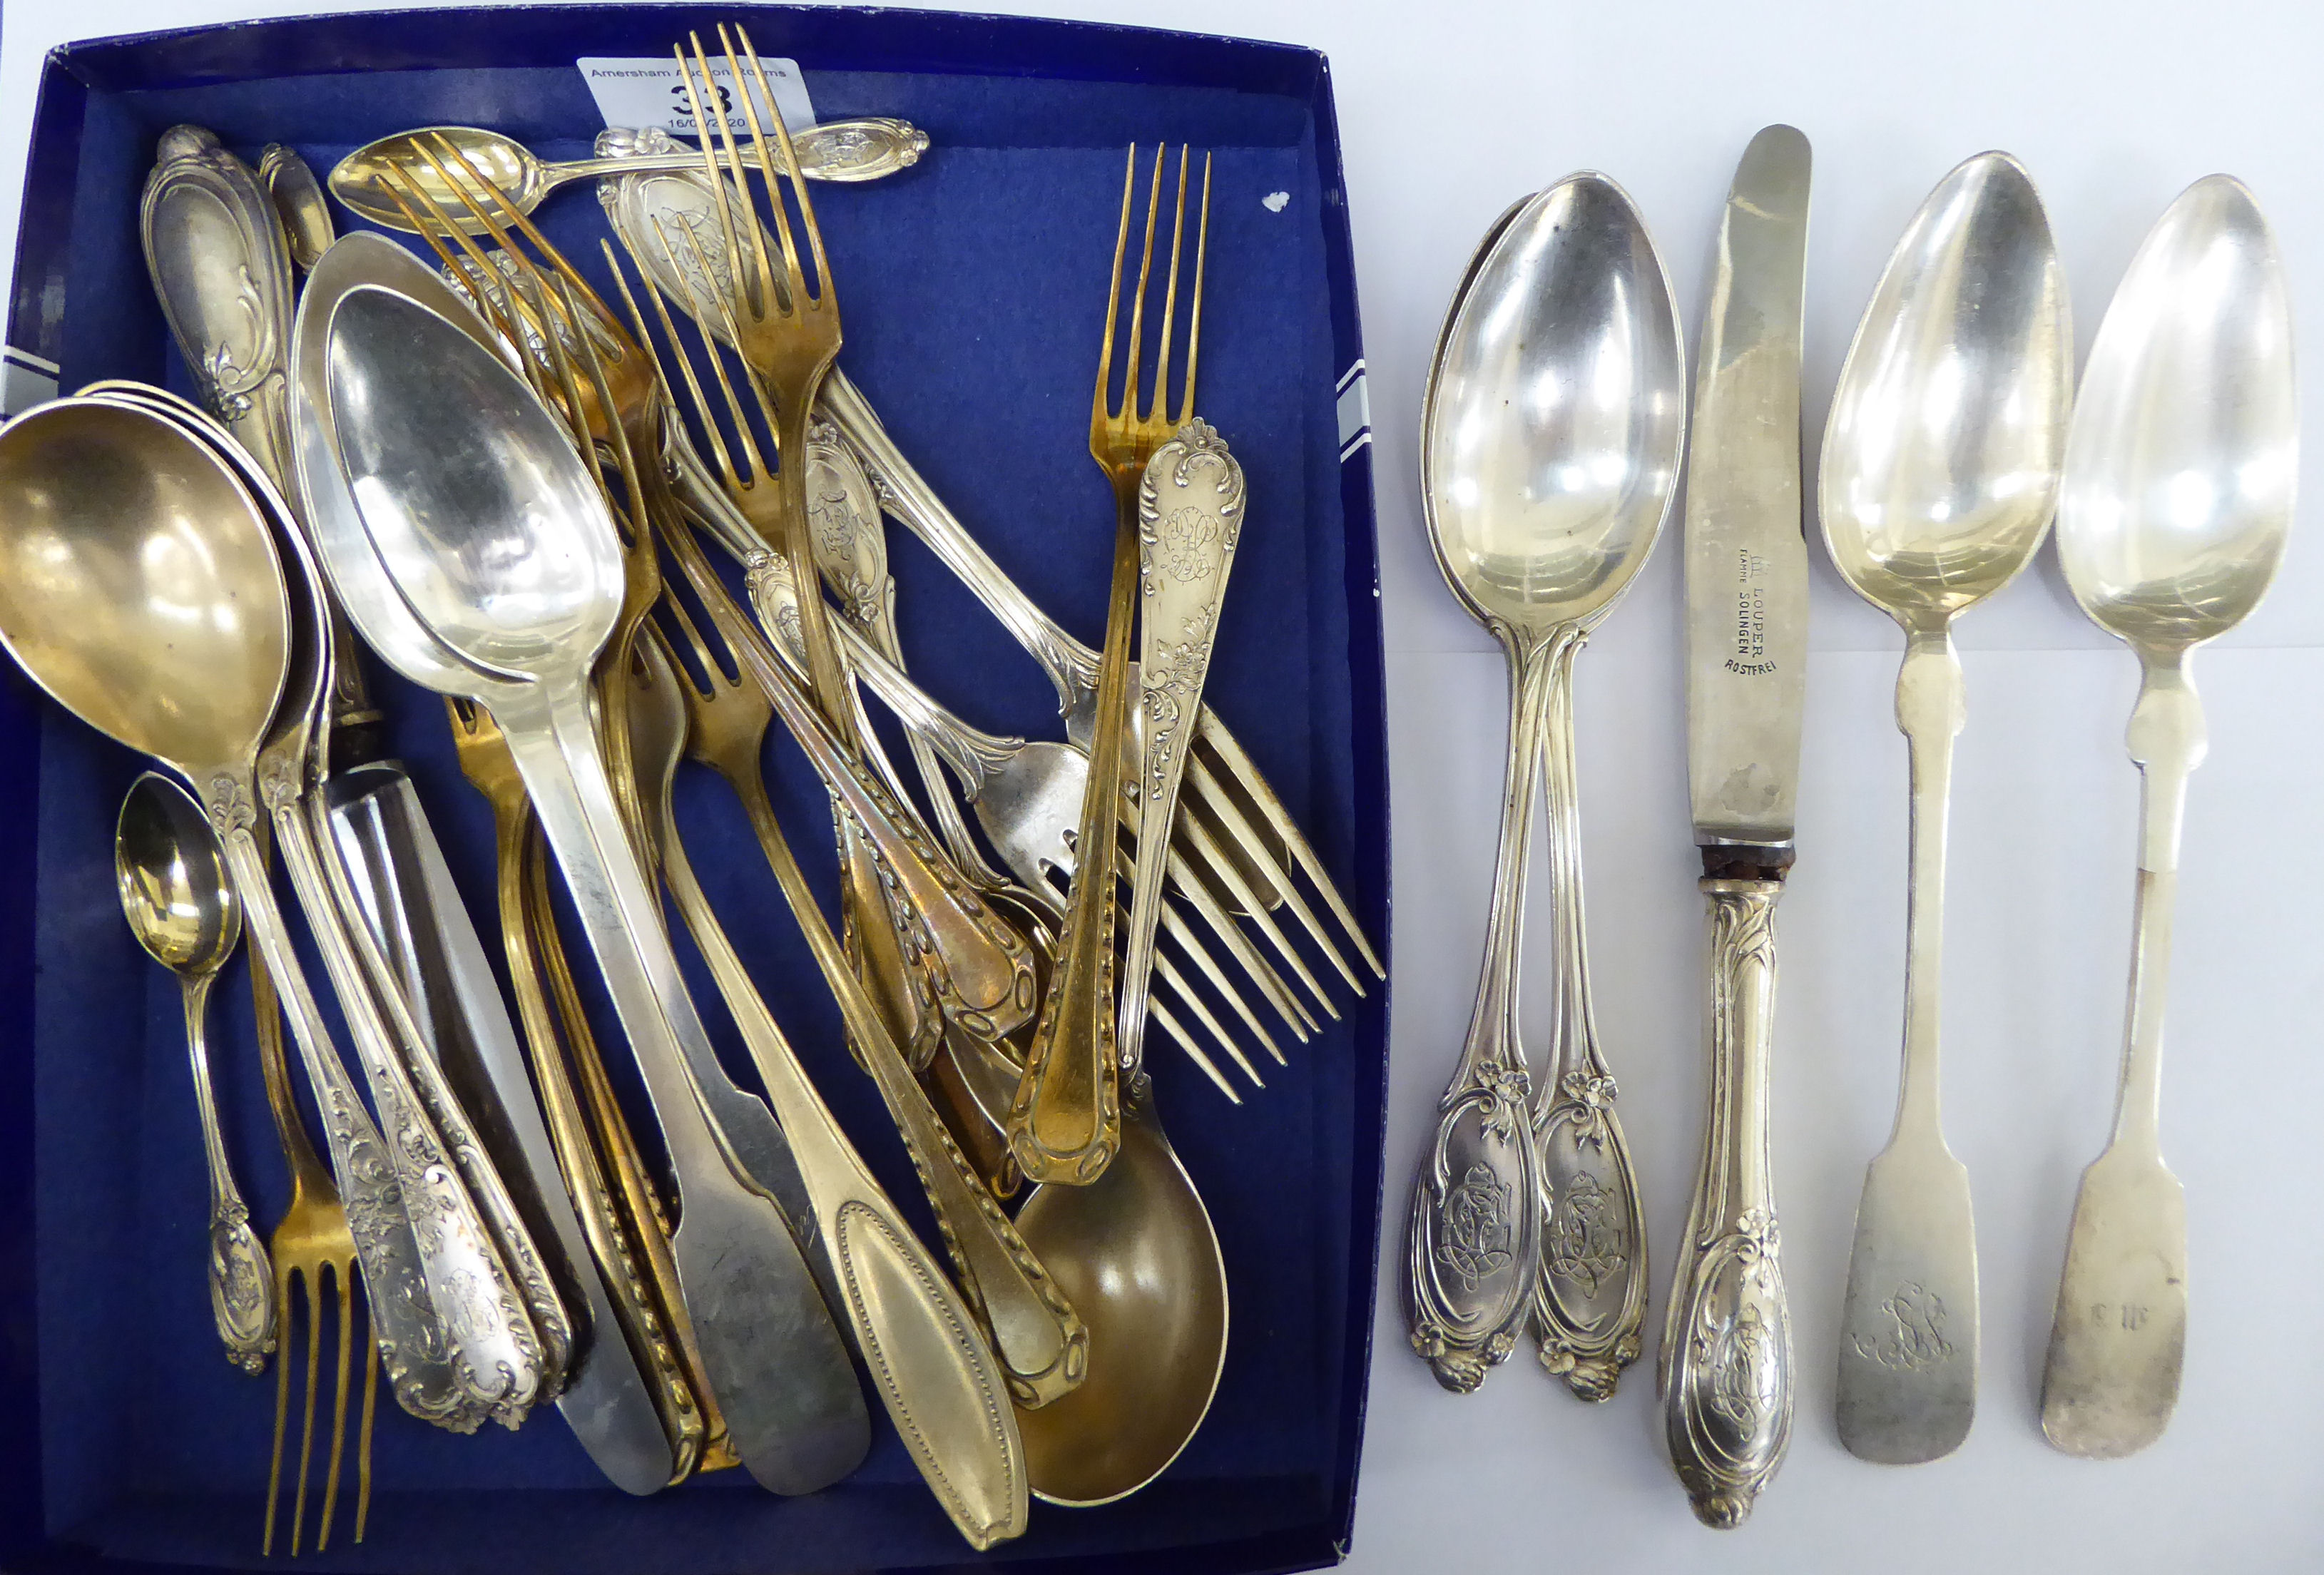 Lot 33 - Late 19th/early 20thC Continental silver coloured metal cutlery and flatware of varying designs